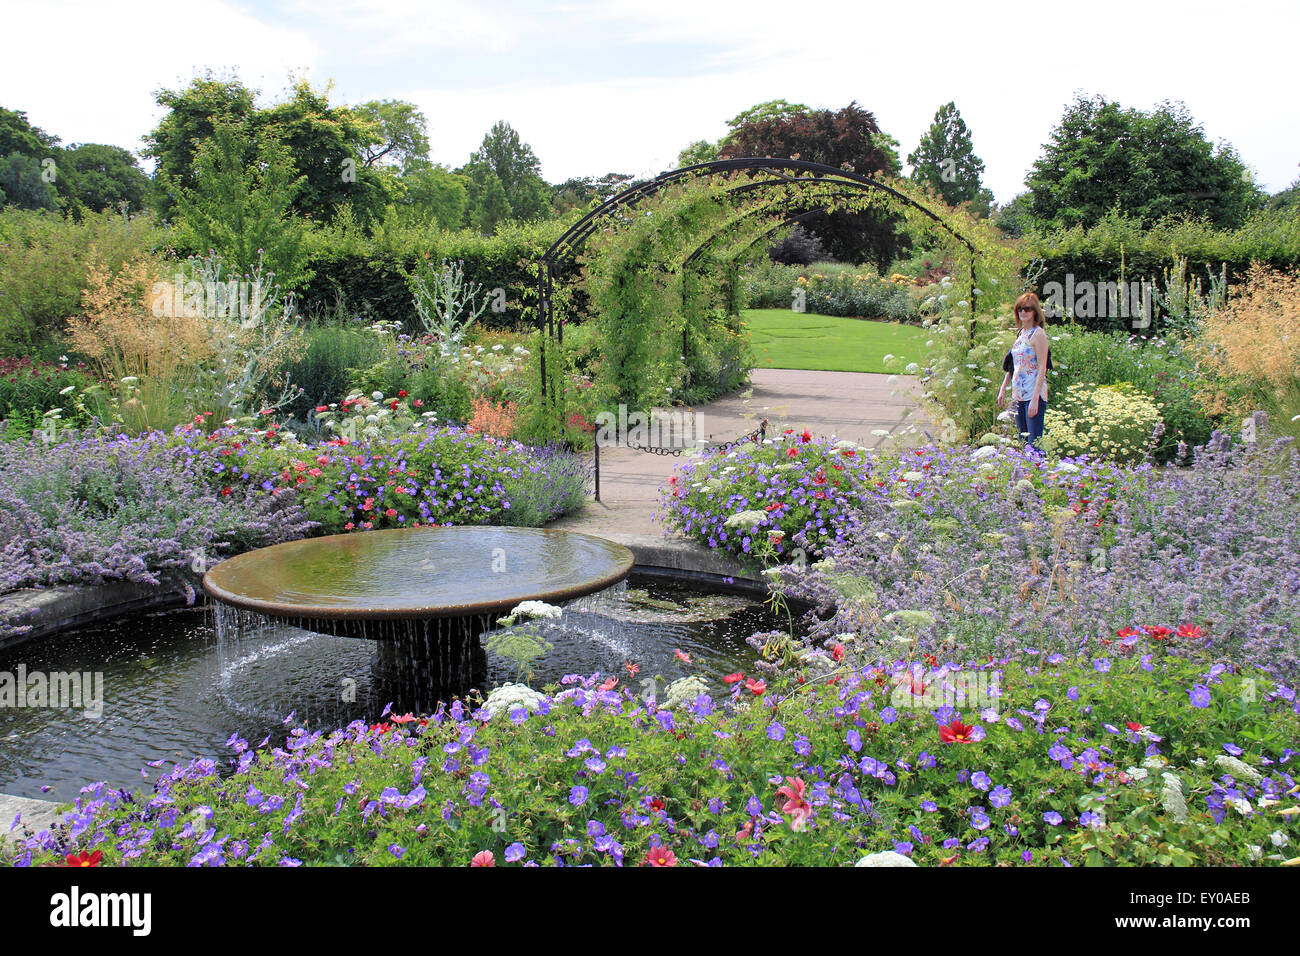 Royal Horticultural Society Arts Fest, RHS Garden Wisley, Woking, Surrey, UK. 18th and 19th July 2015. Two day event - Stock Image